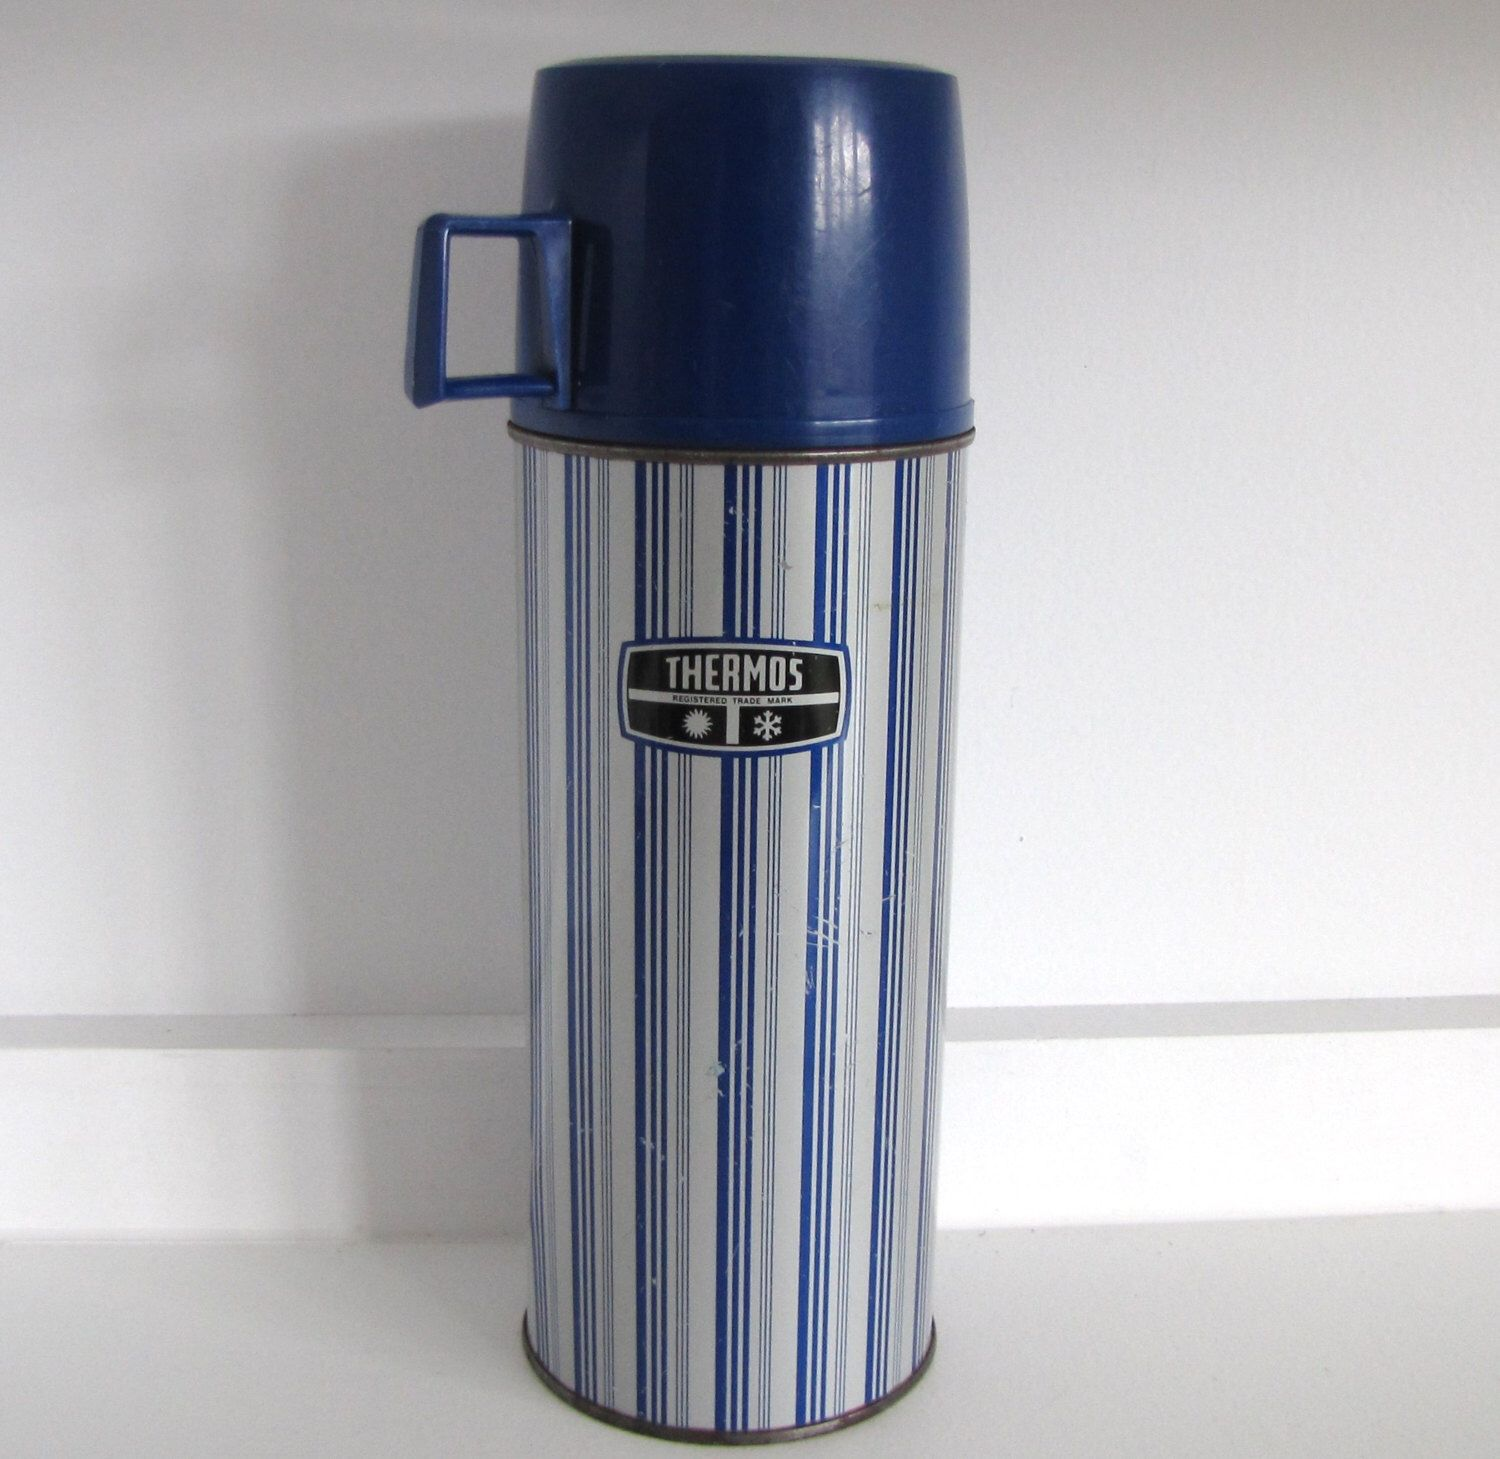 Vintage Blue and White Striped Metal Thermos Flask Picnic Beach Seaside Camping by CaravanVintageRetro on Etsy https://www.etsy.com/listing/278869390/vintage-blue-and-white-striped-metal